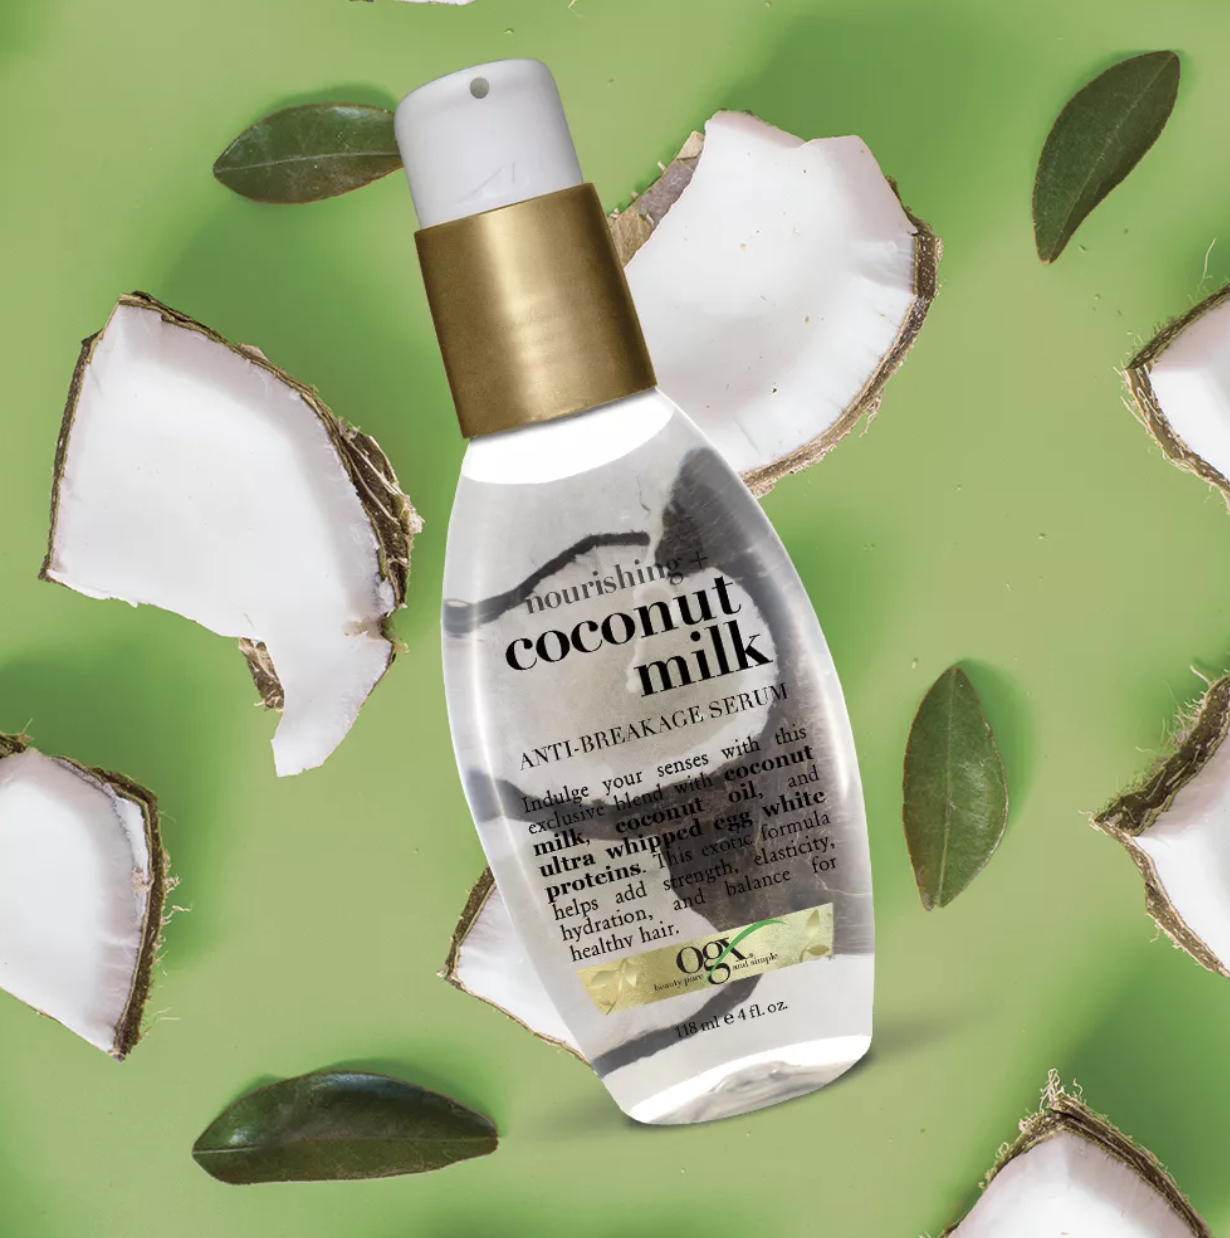 the serum in a clear bottle around crushed coconuts